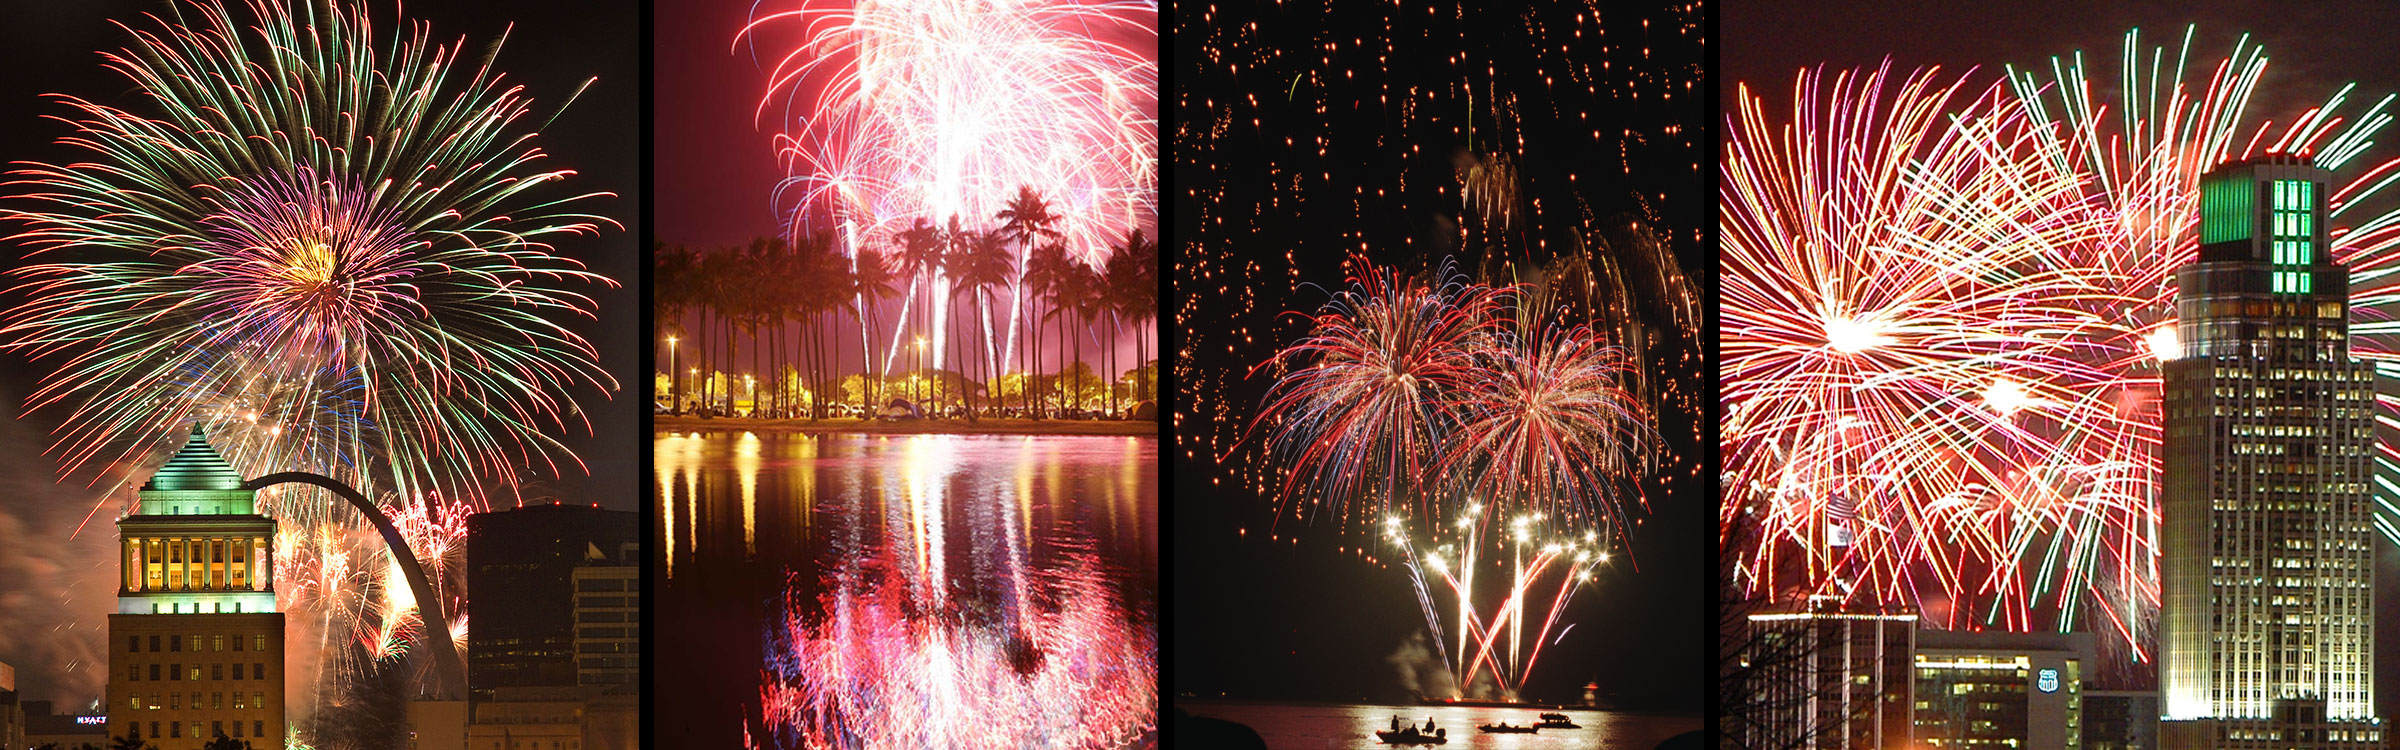 Fireworks Displays, Pyrotechnics, Flame Effects Company